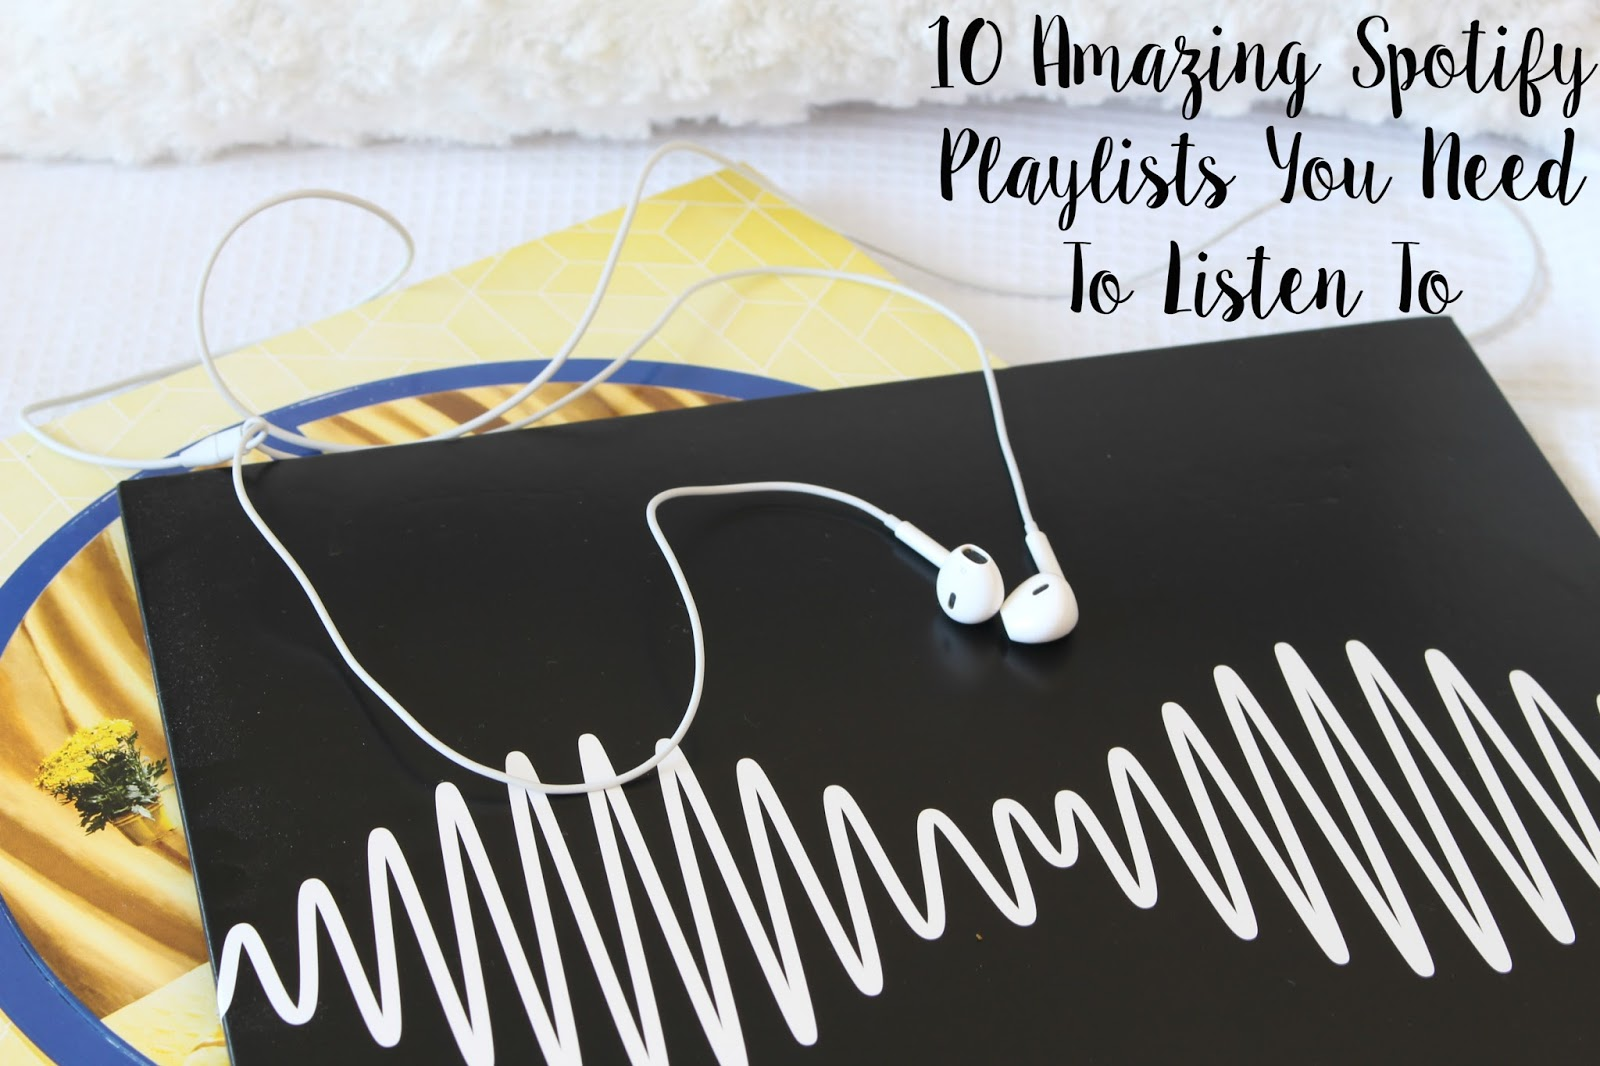 10 Amazing Spotify Playlists You Need To Listen To music blogger top 10